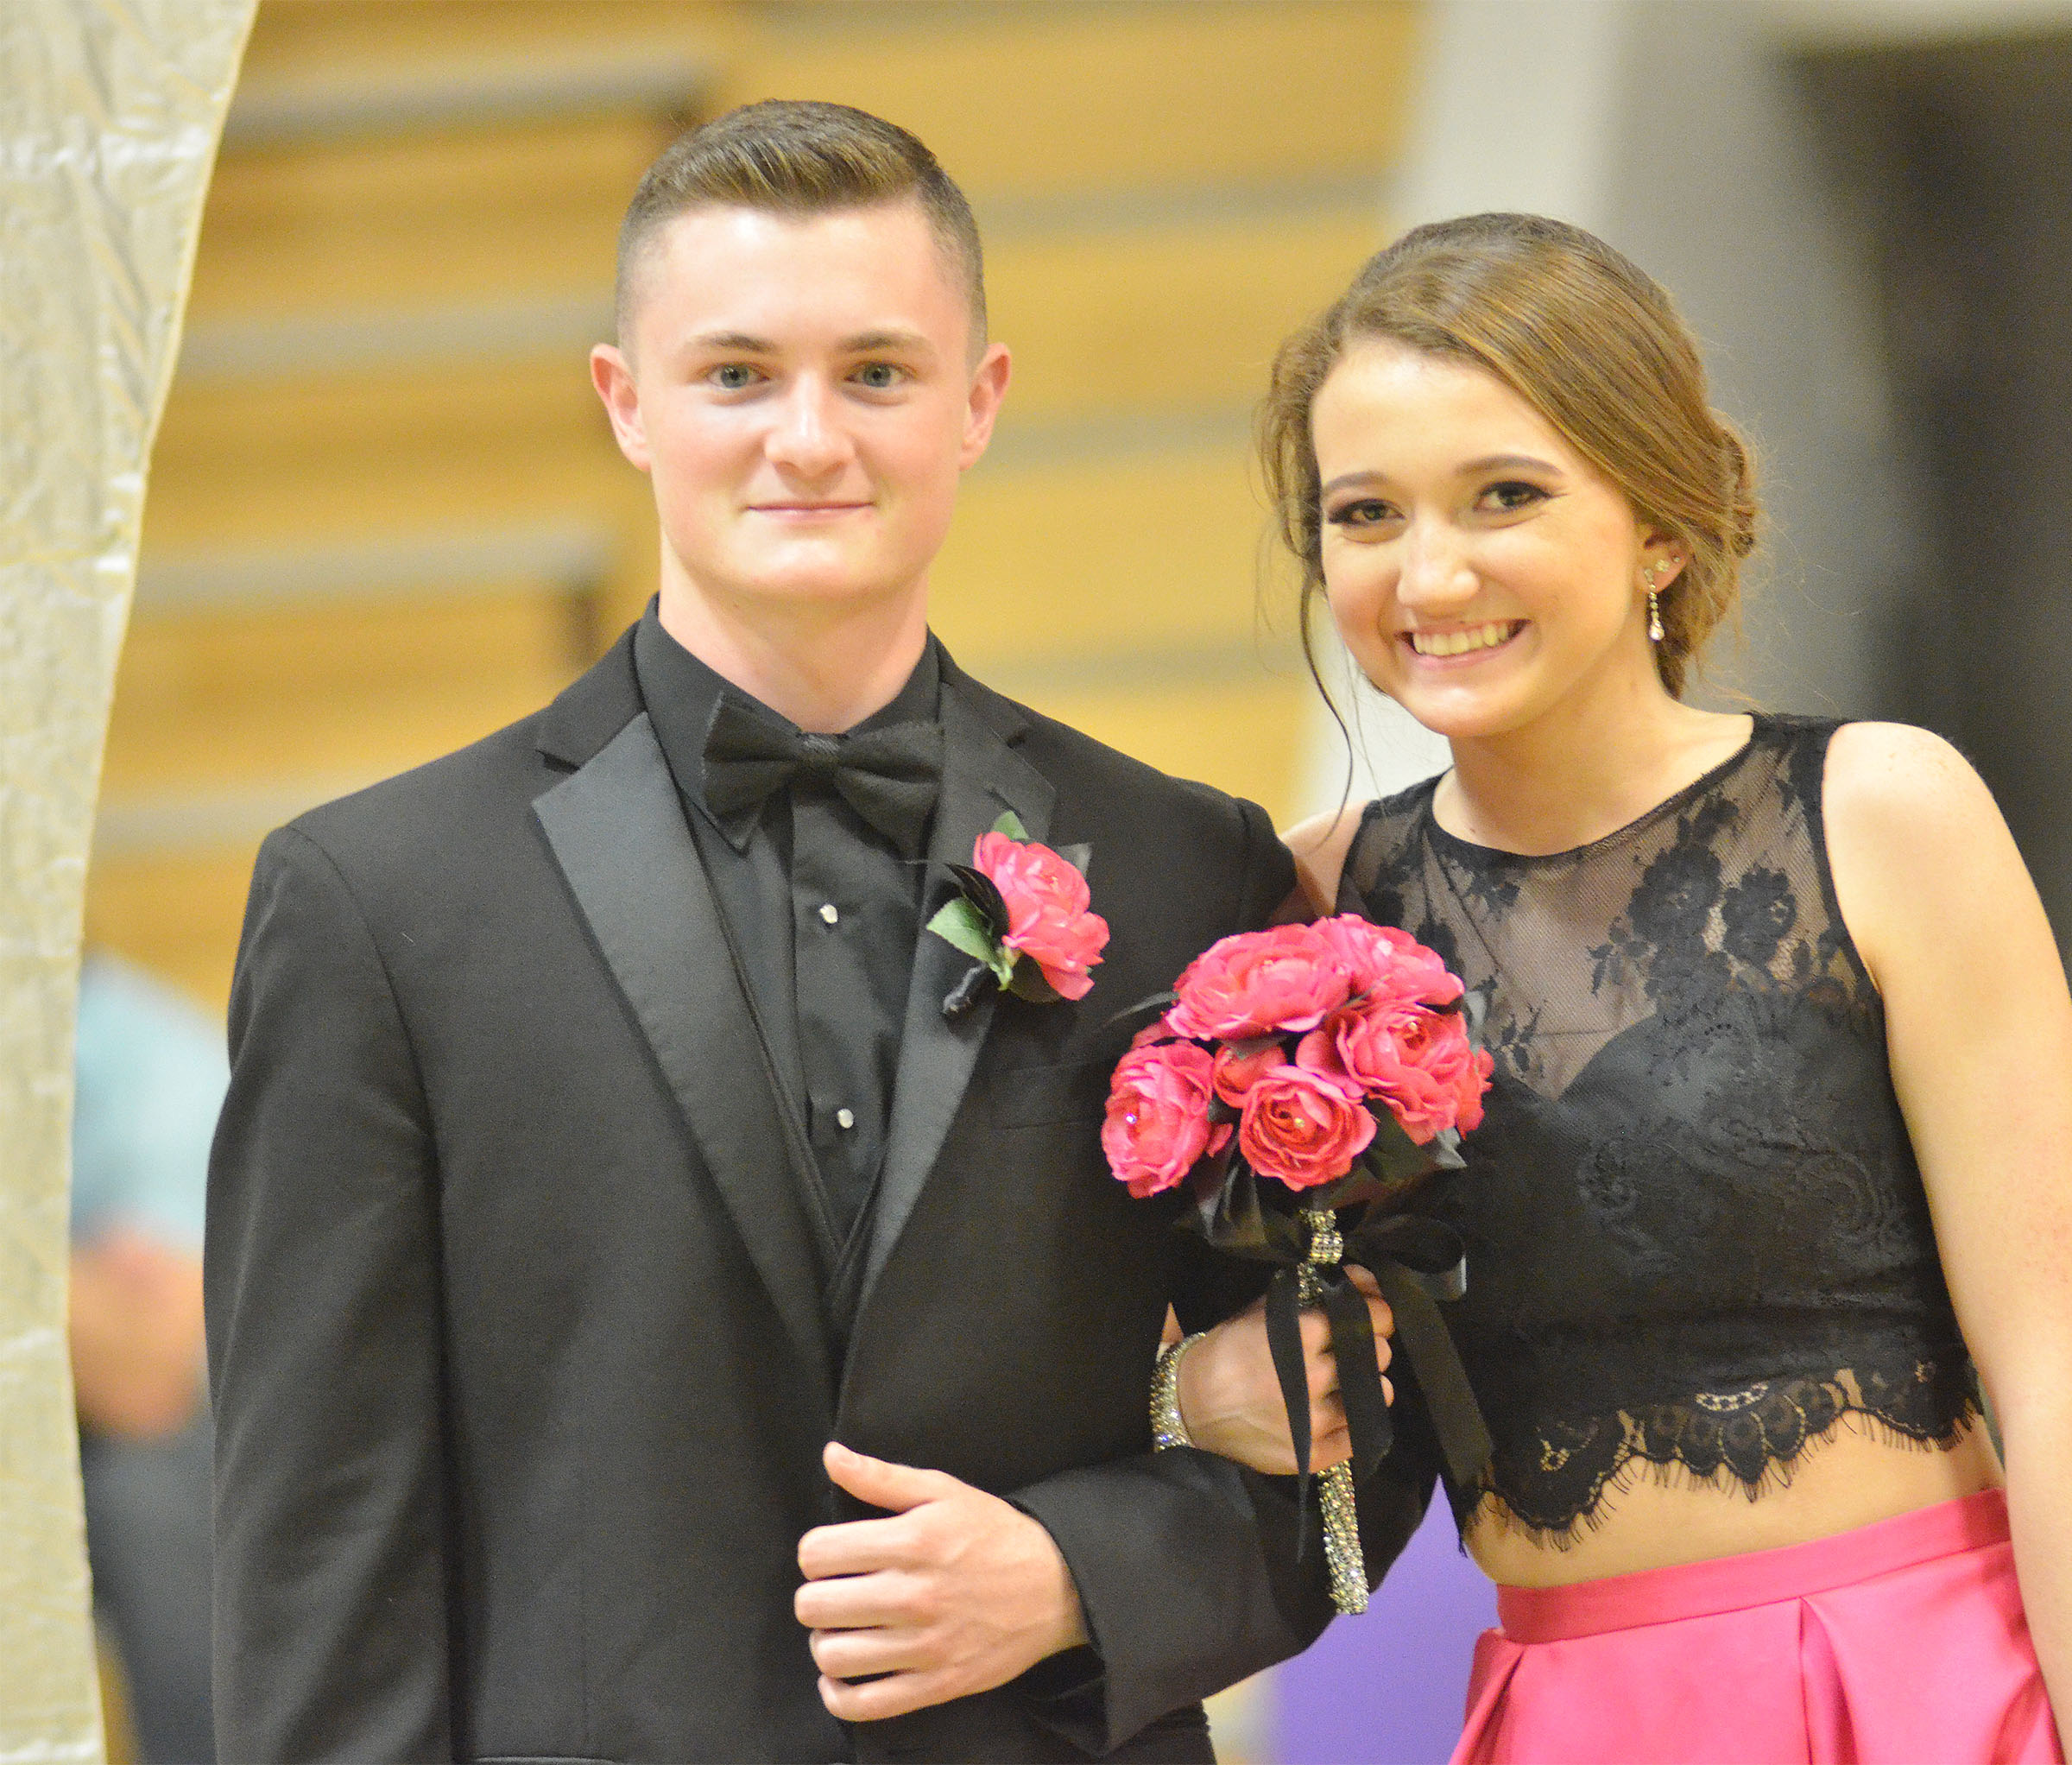 CHS junior Bryce Richardson and sophomore Salena Ritchie smile at prom walk.